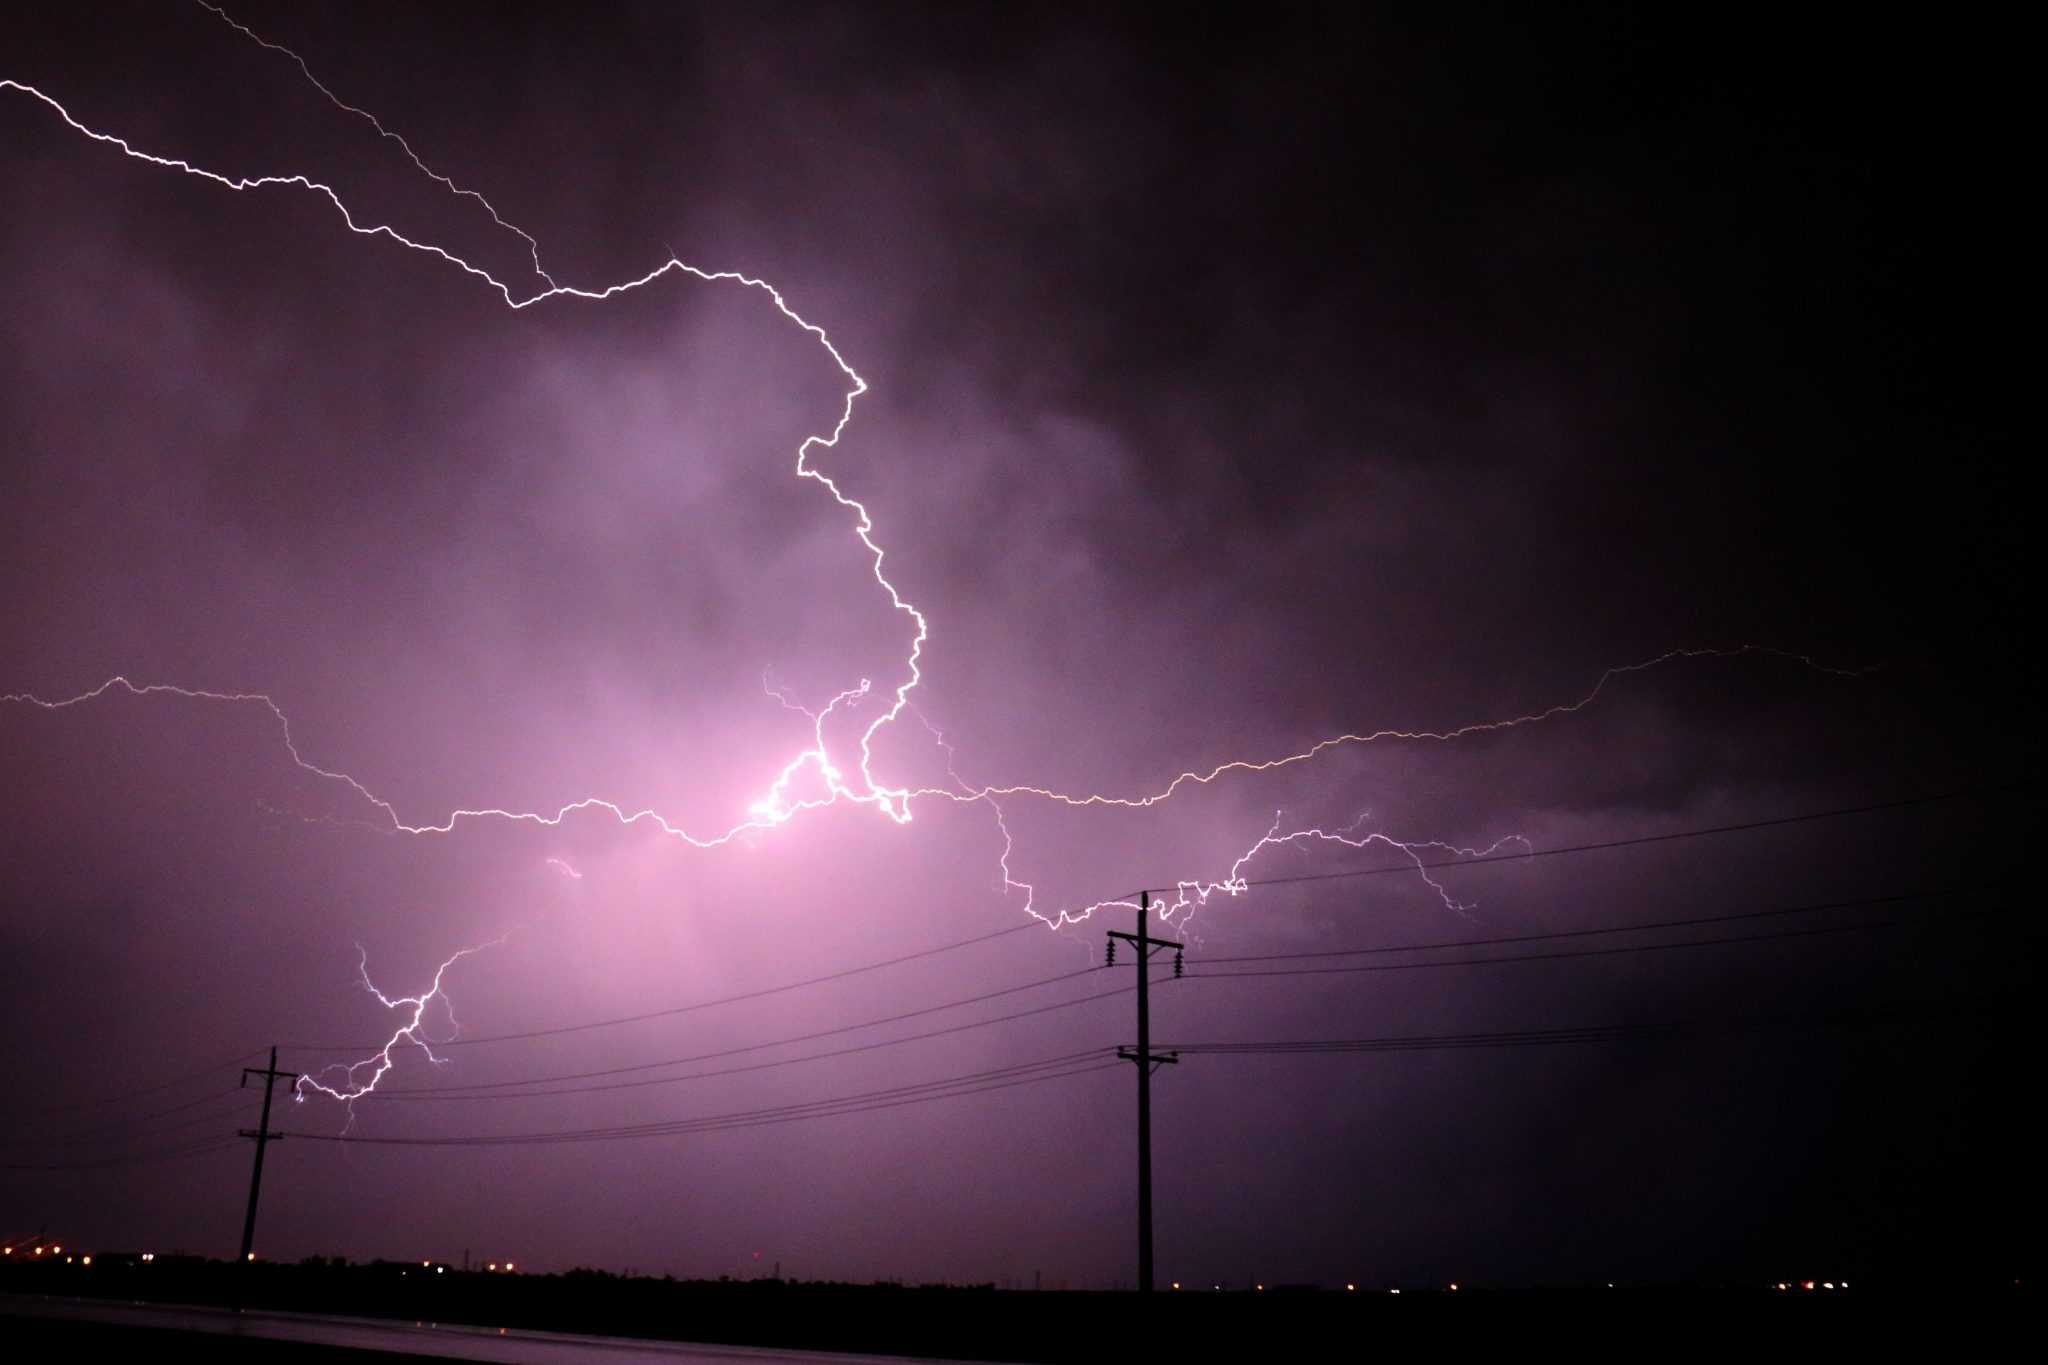 Lightning Strikes and electricity pole in background